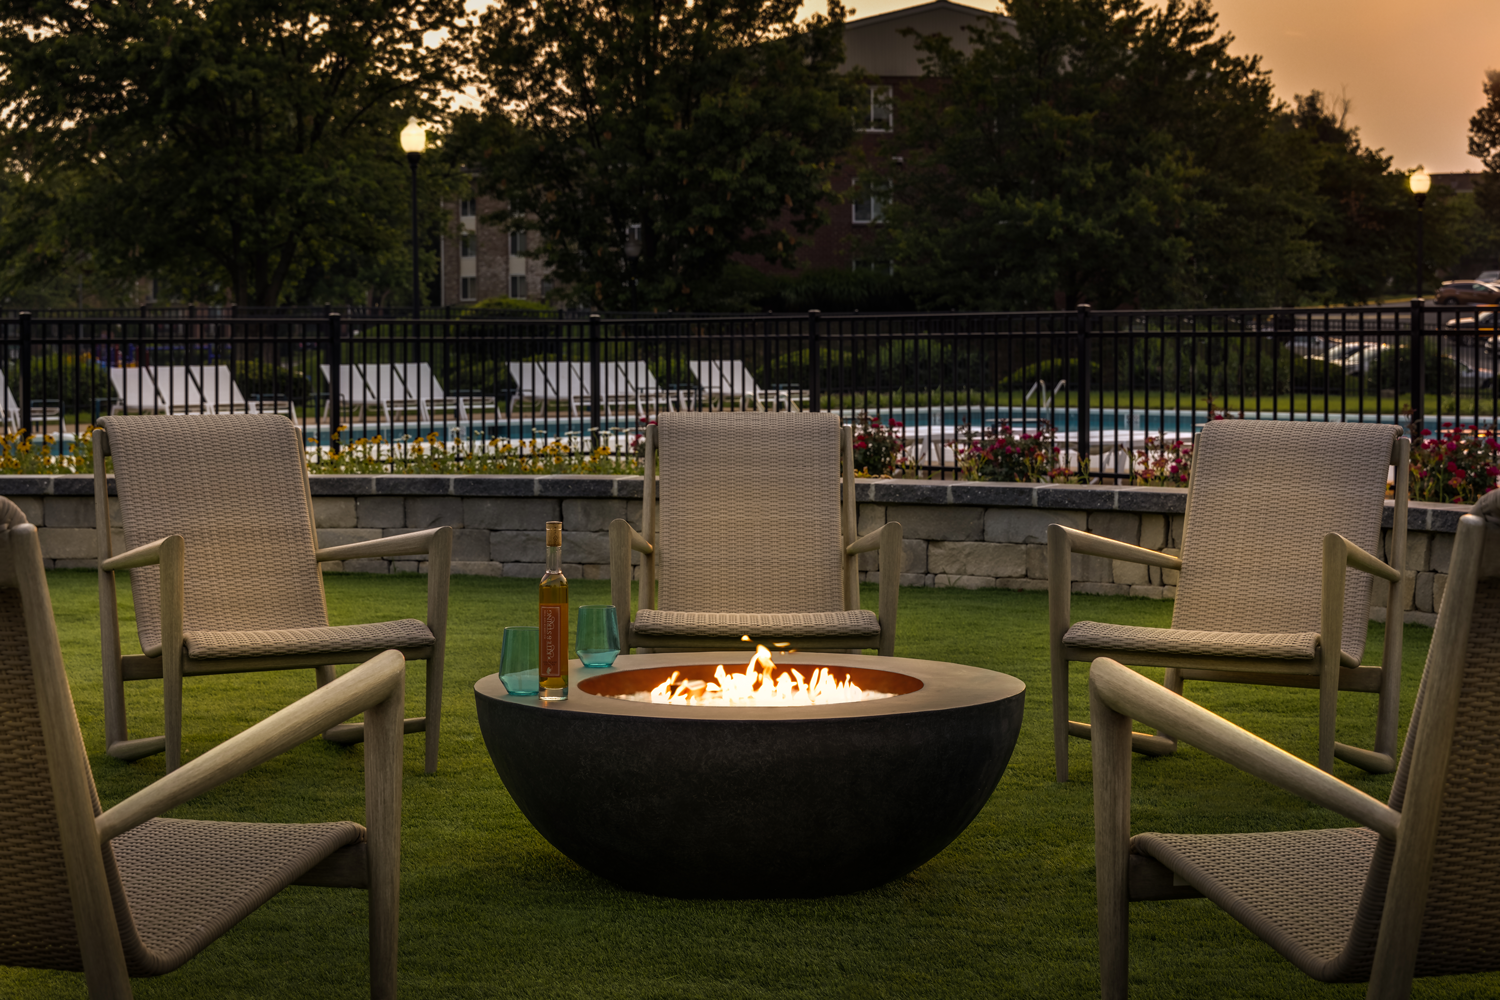 TowsonTown Place Apartments - Fire Pit Outdoor Area